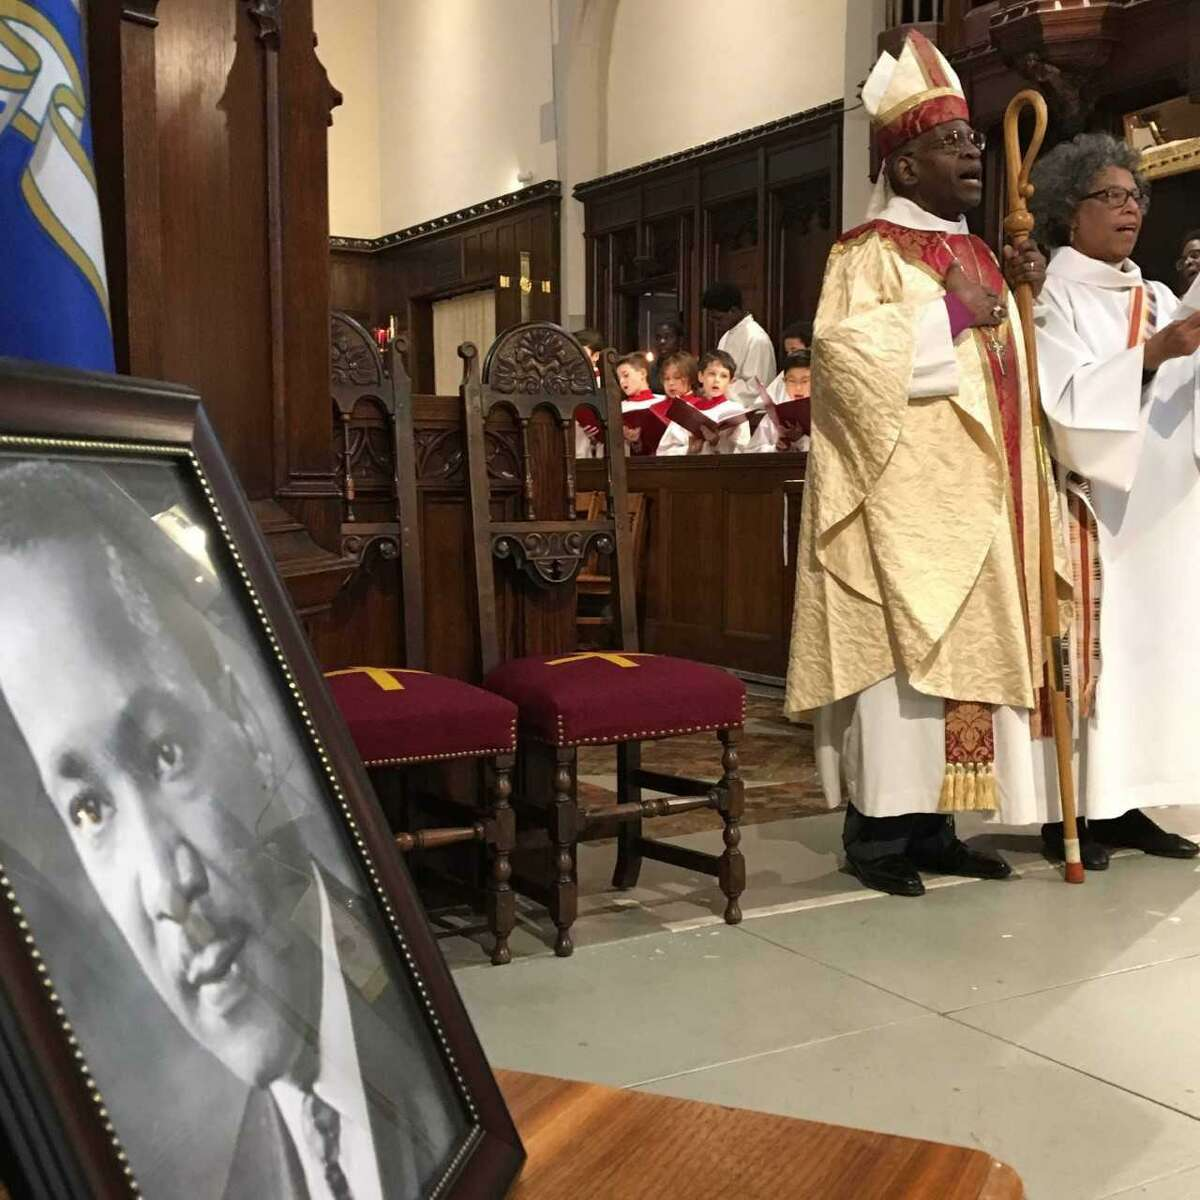 The Right Rev. Nathan D. Baxter, retired bishop of Central Pennsylvania, and the Rev. Canon Diane Peterson of Trinity Church of Southport lead MLK service Monday in West Haven. The Union of Black Episcopalians' Southern Connecticut Chapter organized a eucharistic celebration of the life of the late Rev. Dr. Martin Luther King Jr. on Monday, Jan. 15, 2018 in the Church of the Holy Spirit on Church Street in West Haven.